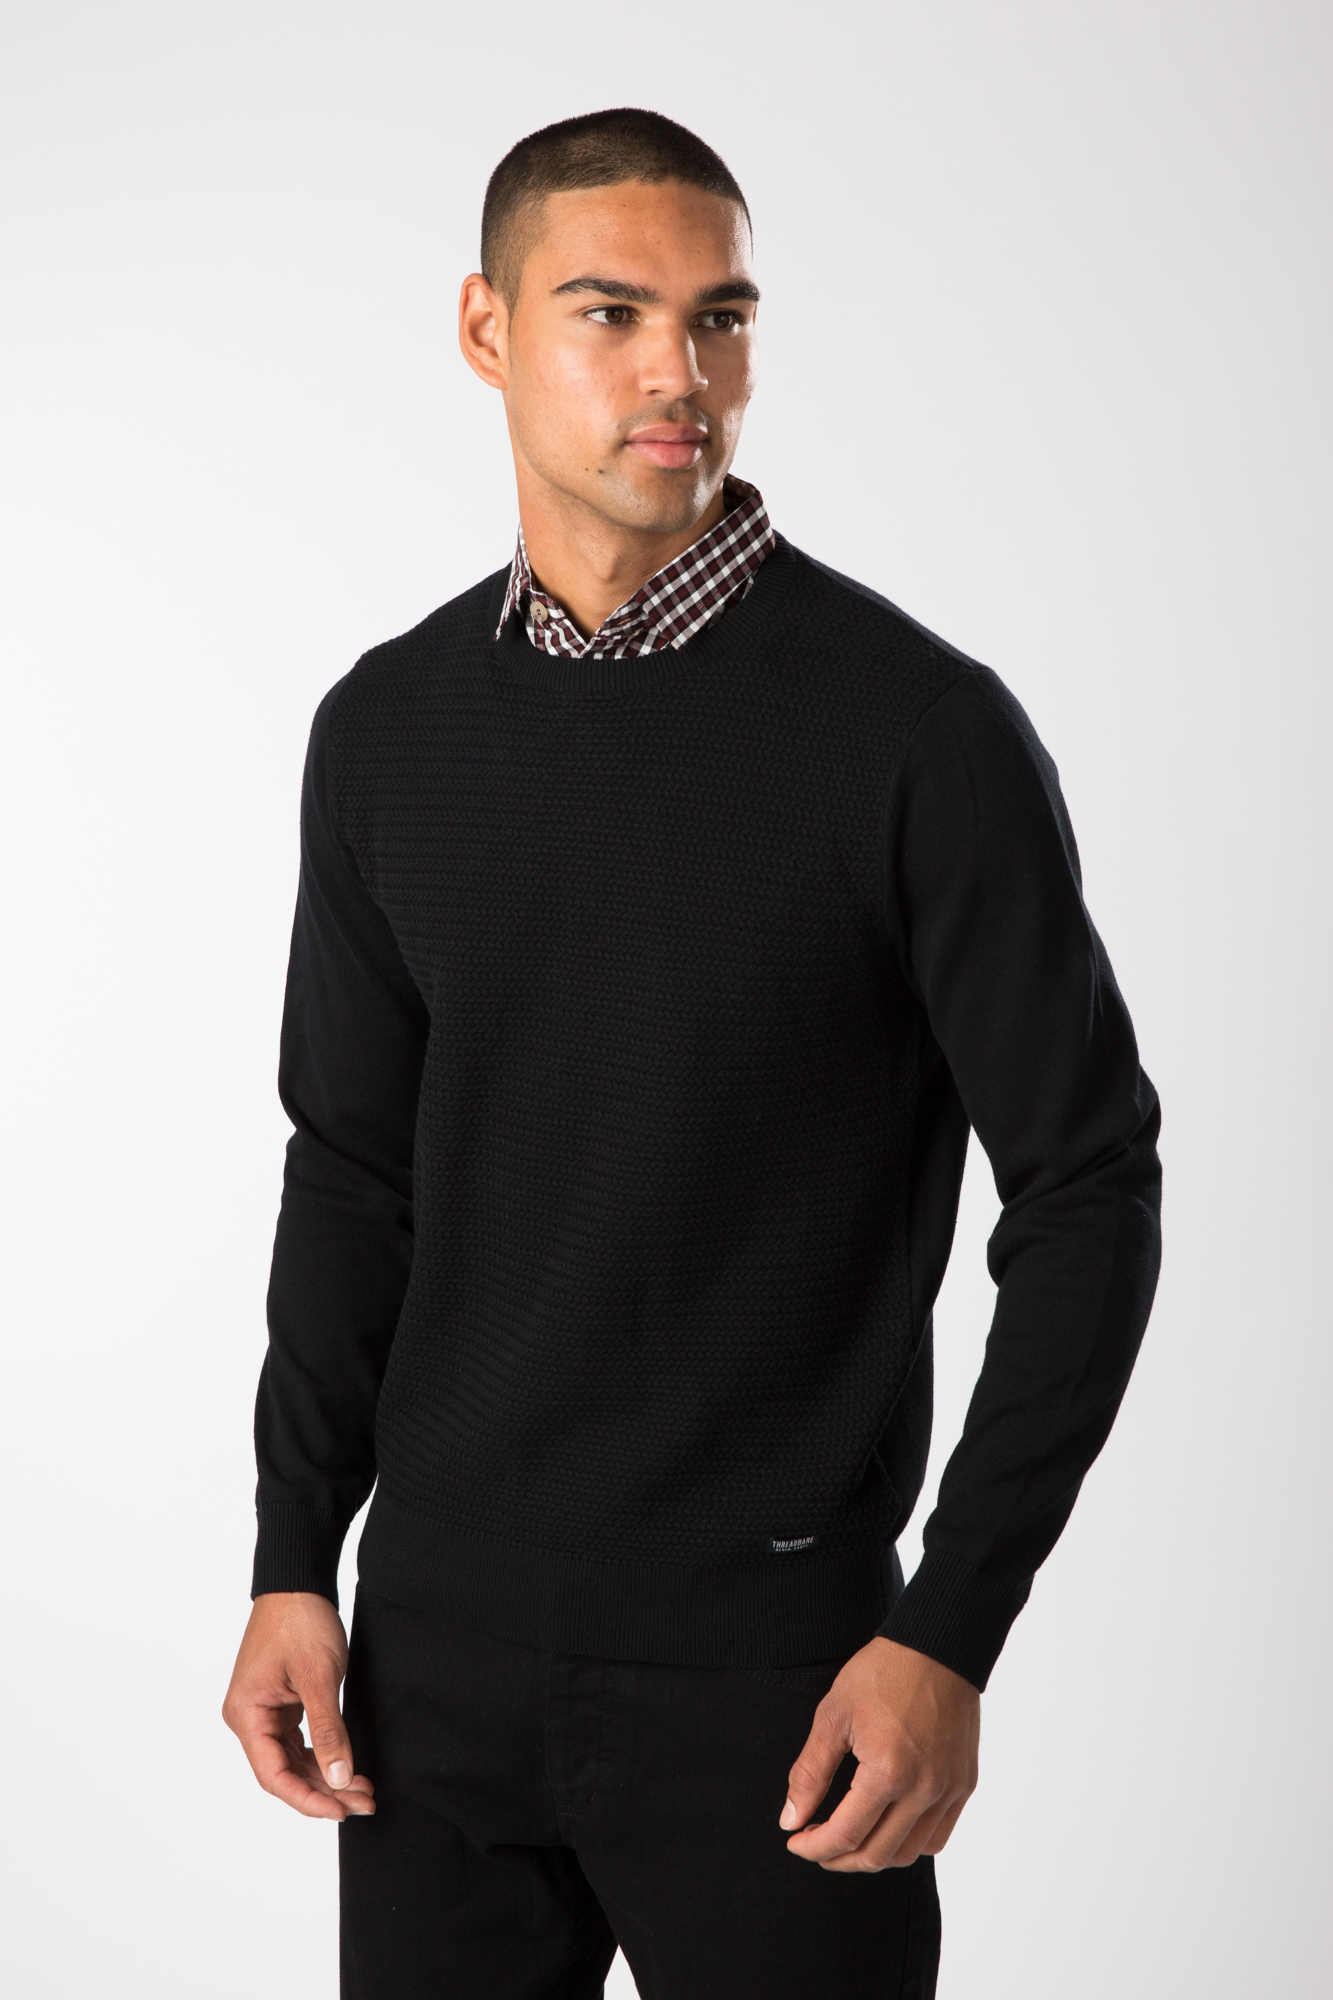 When the temperatures start to fall, a men's sweater adds a crucial layer of comfort and style. Sears has a wide selection of sweaters that are just right for any occasion. A sophisticated V-neck sweater with an argyle pattern and ribbed trim is versatile enough for any outfit.